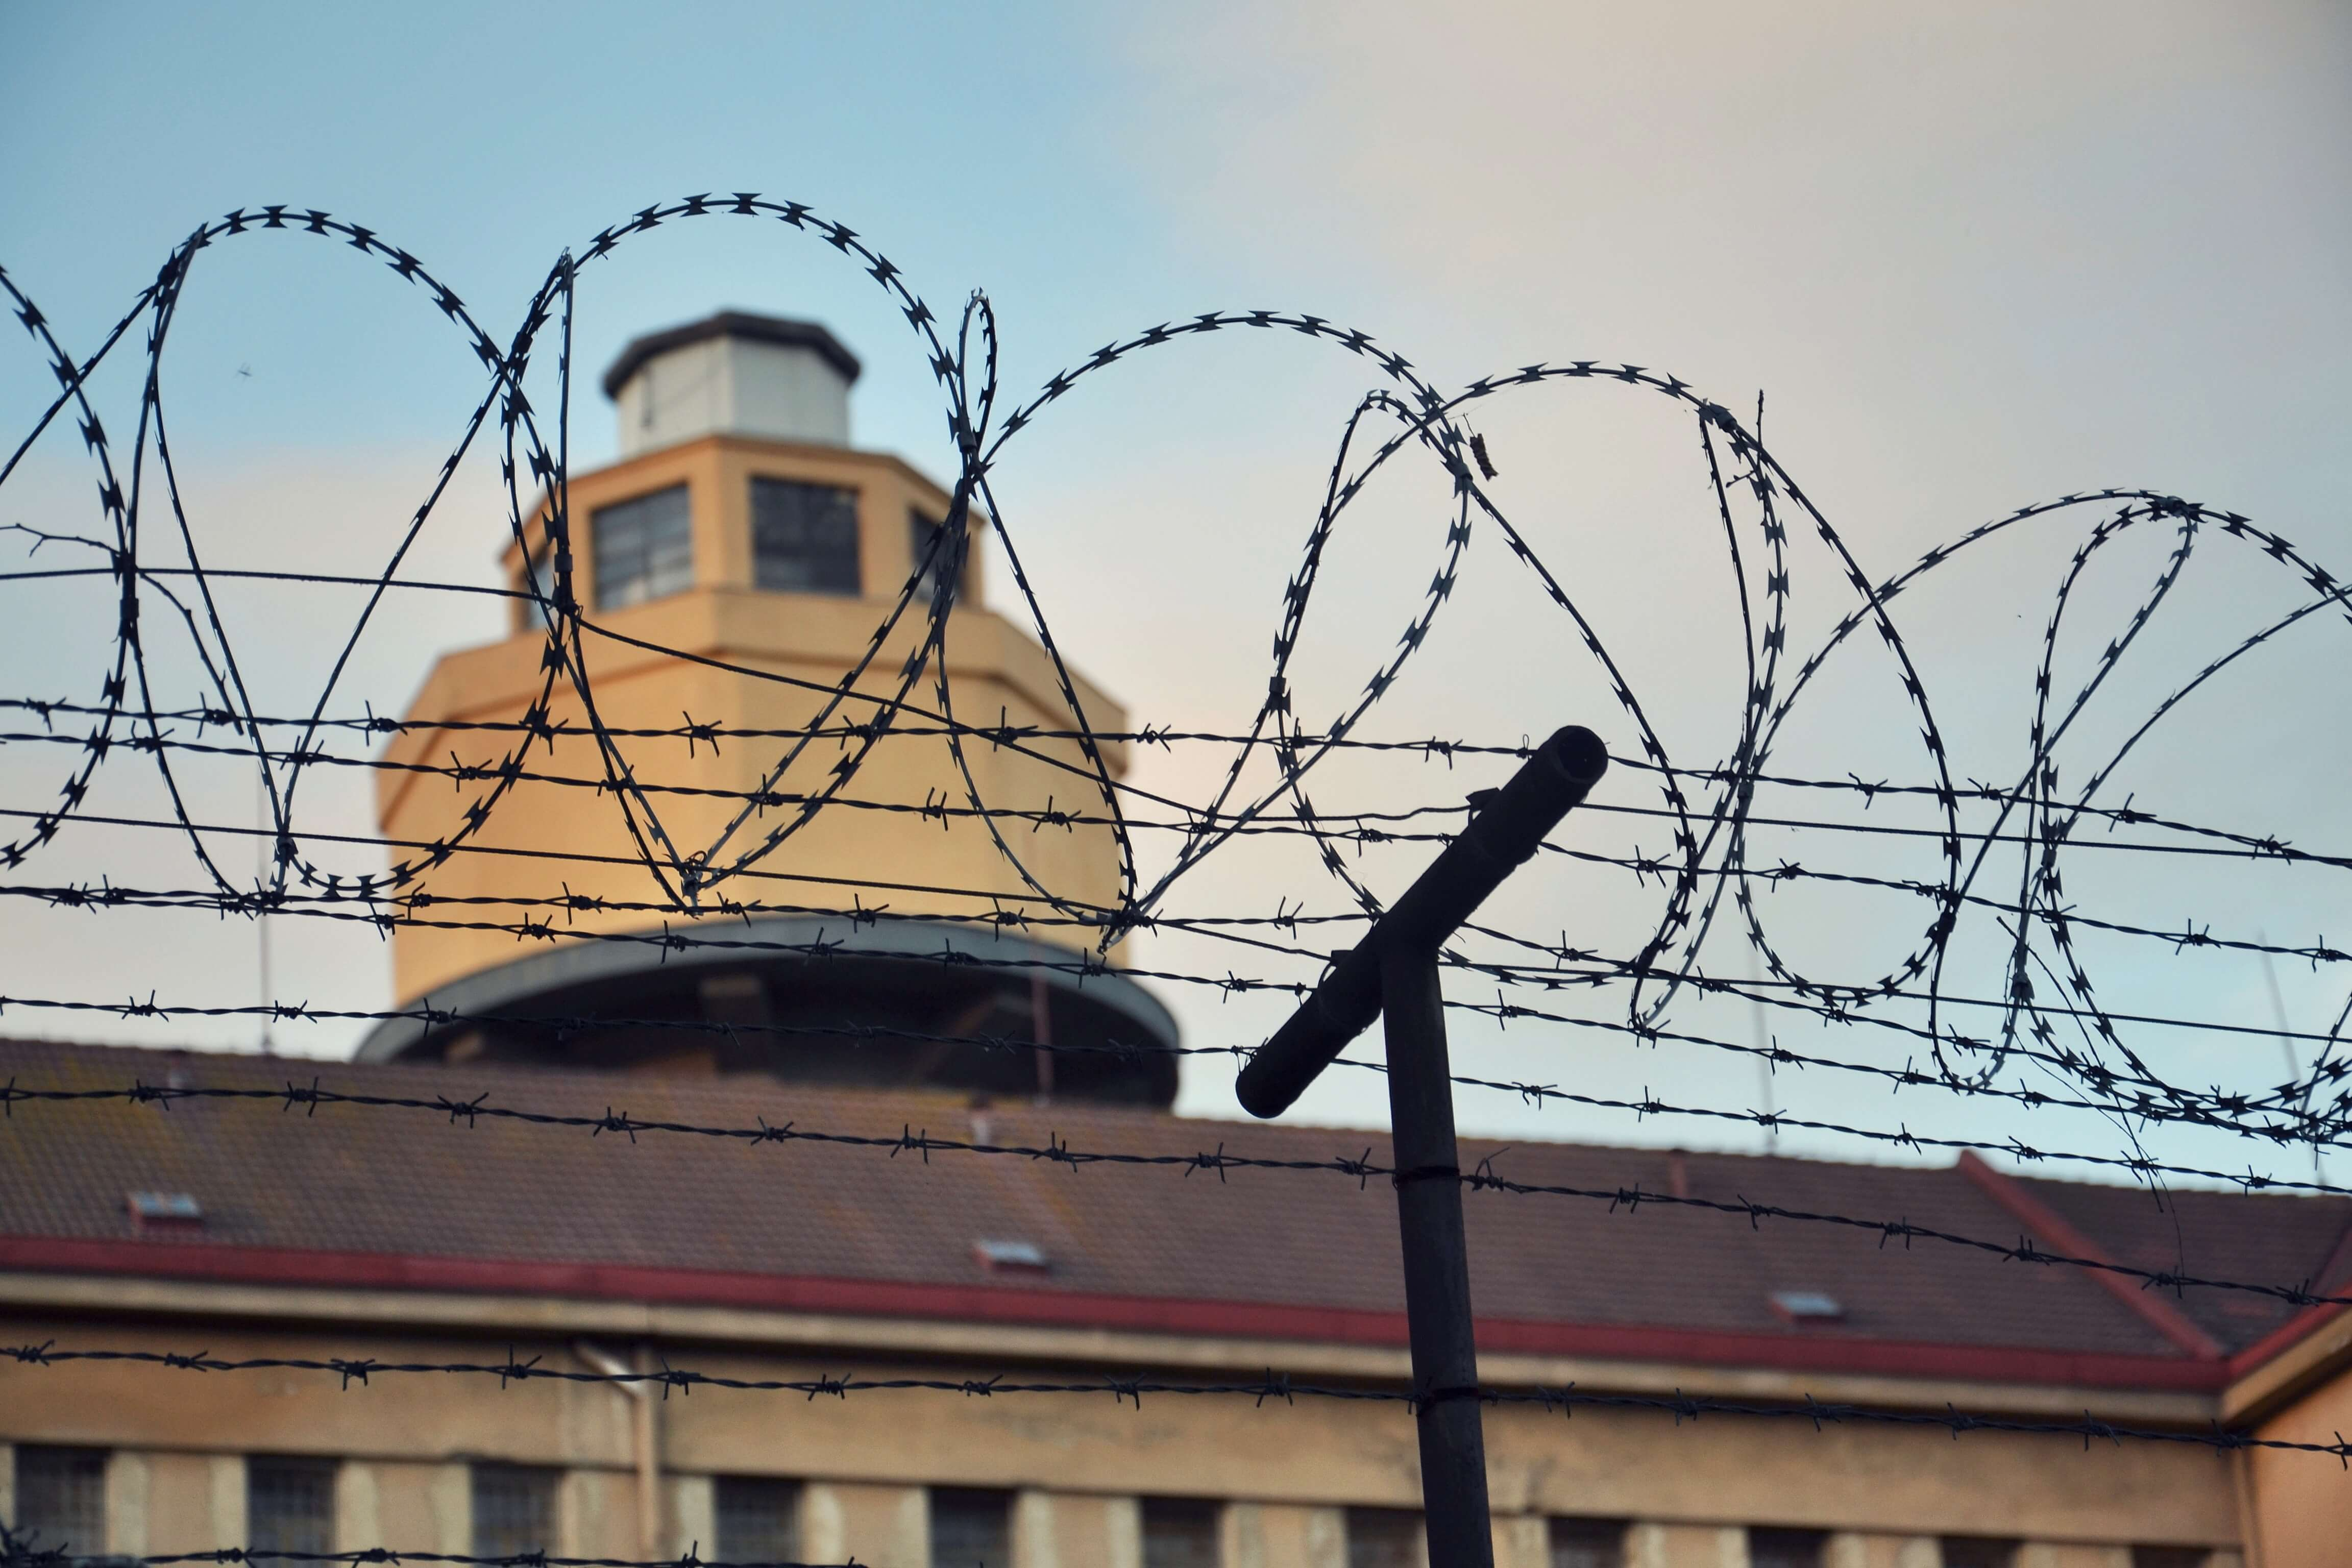 image of barbed wire fence in front of prison building